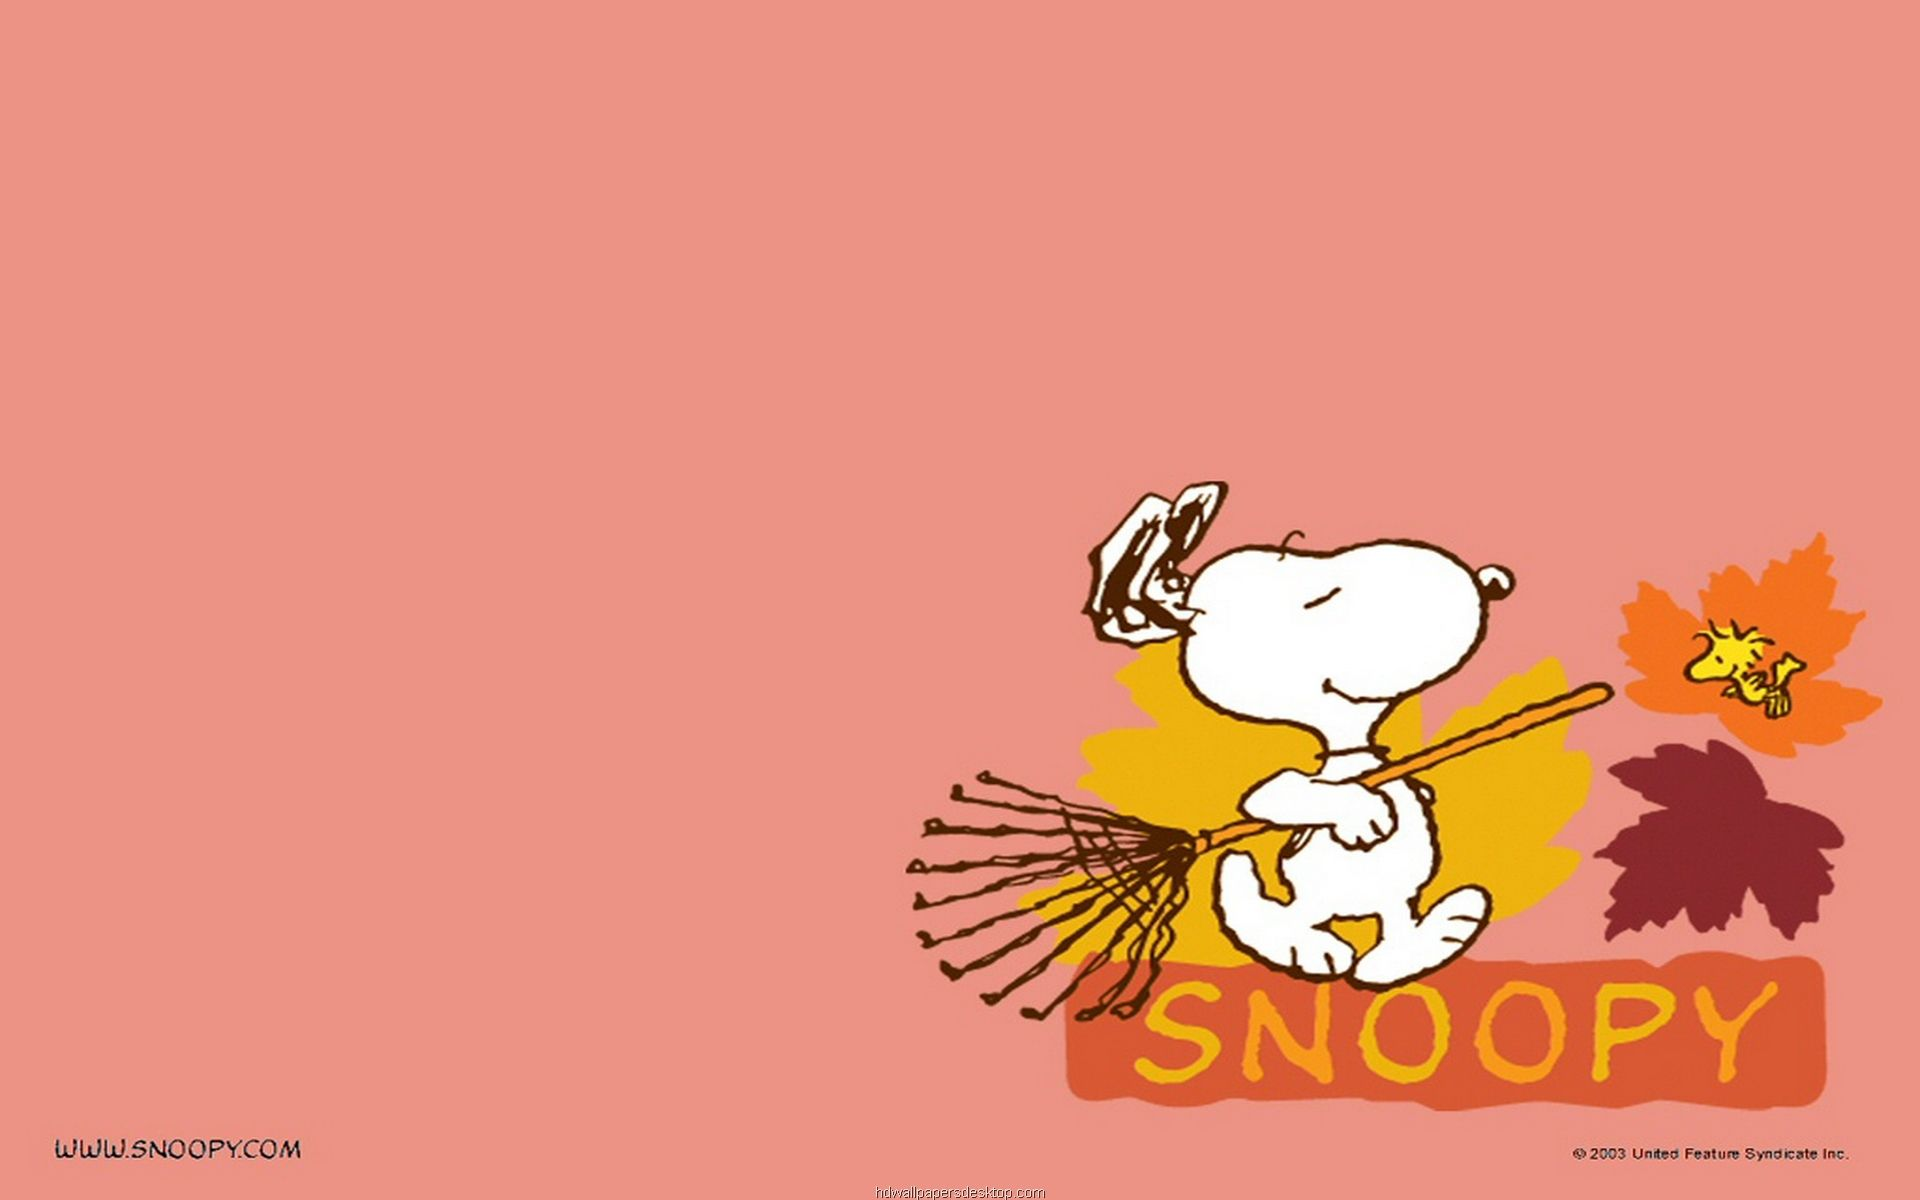 Snoopy Wallpaper Large HD Wallpaper Database 1920x1200